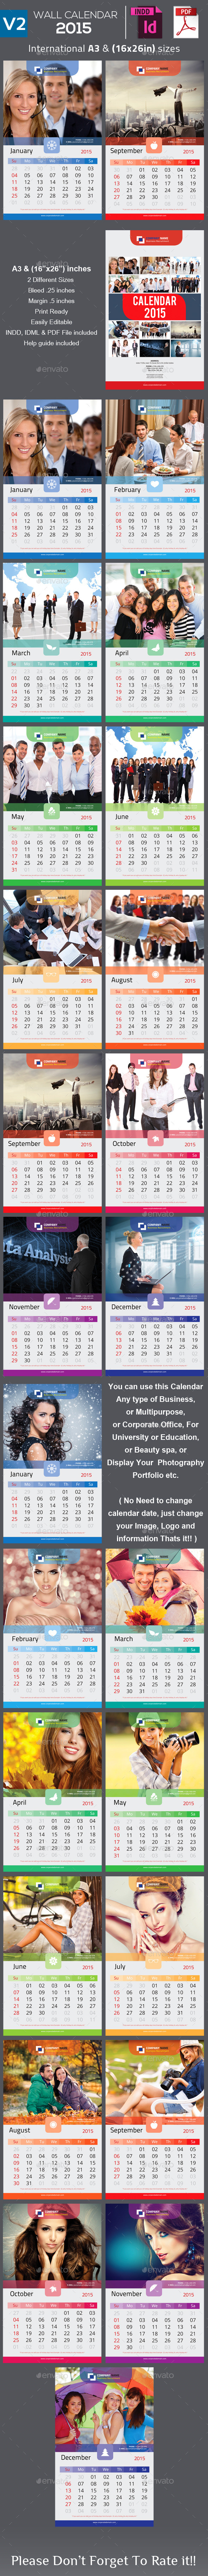 GraphicRiver Clean Wall Calendar 2015 V2 9221821